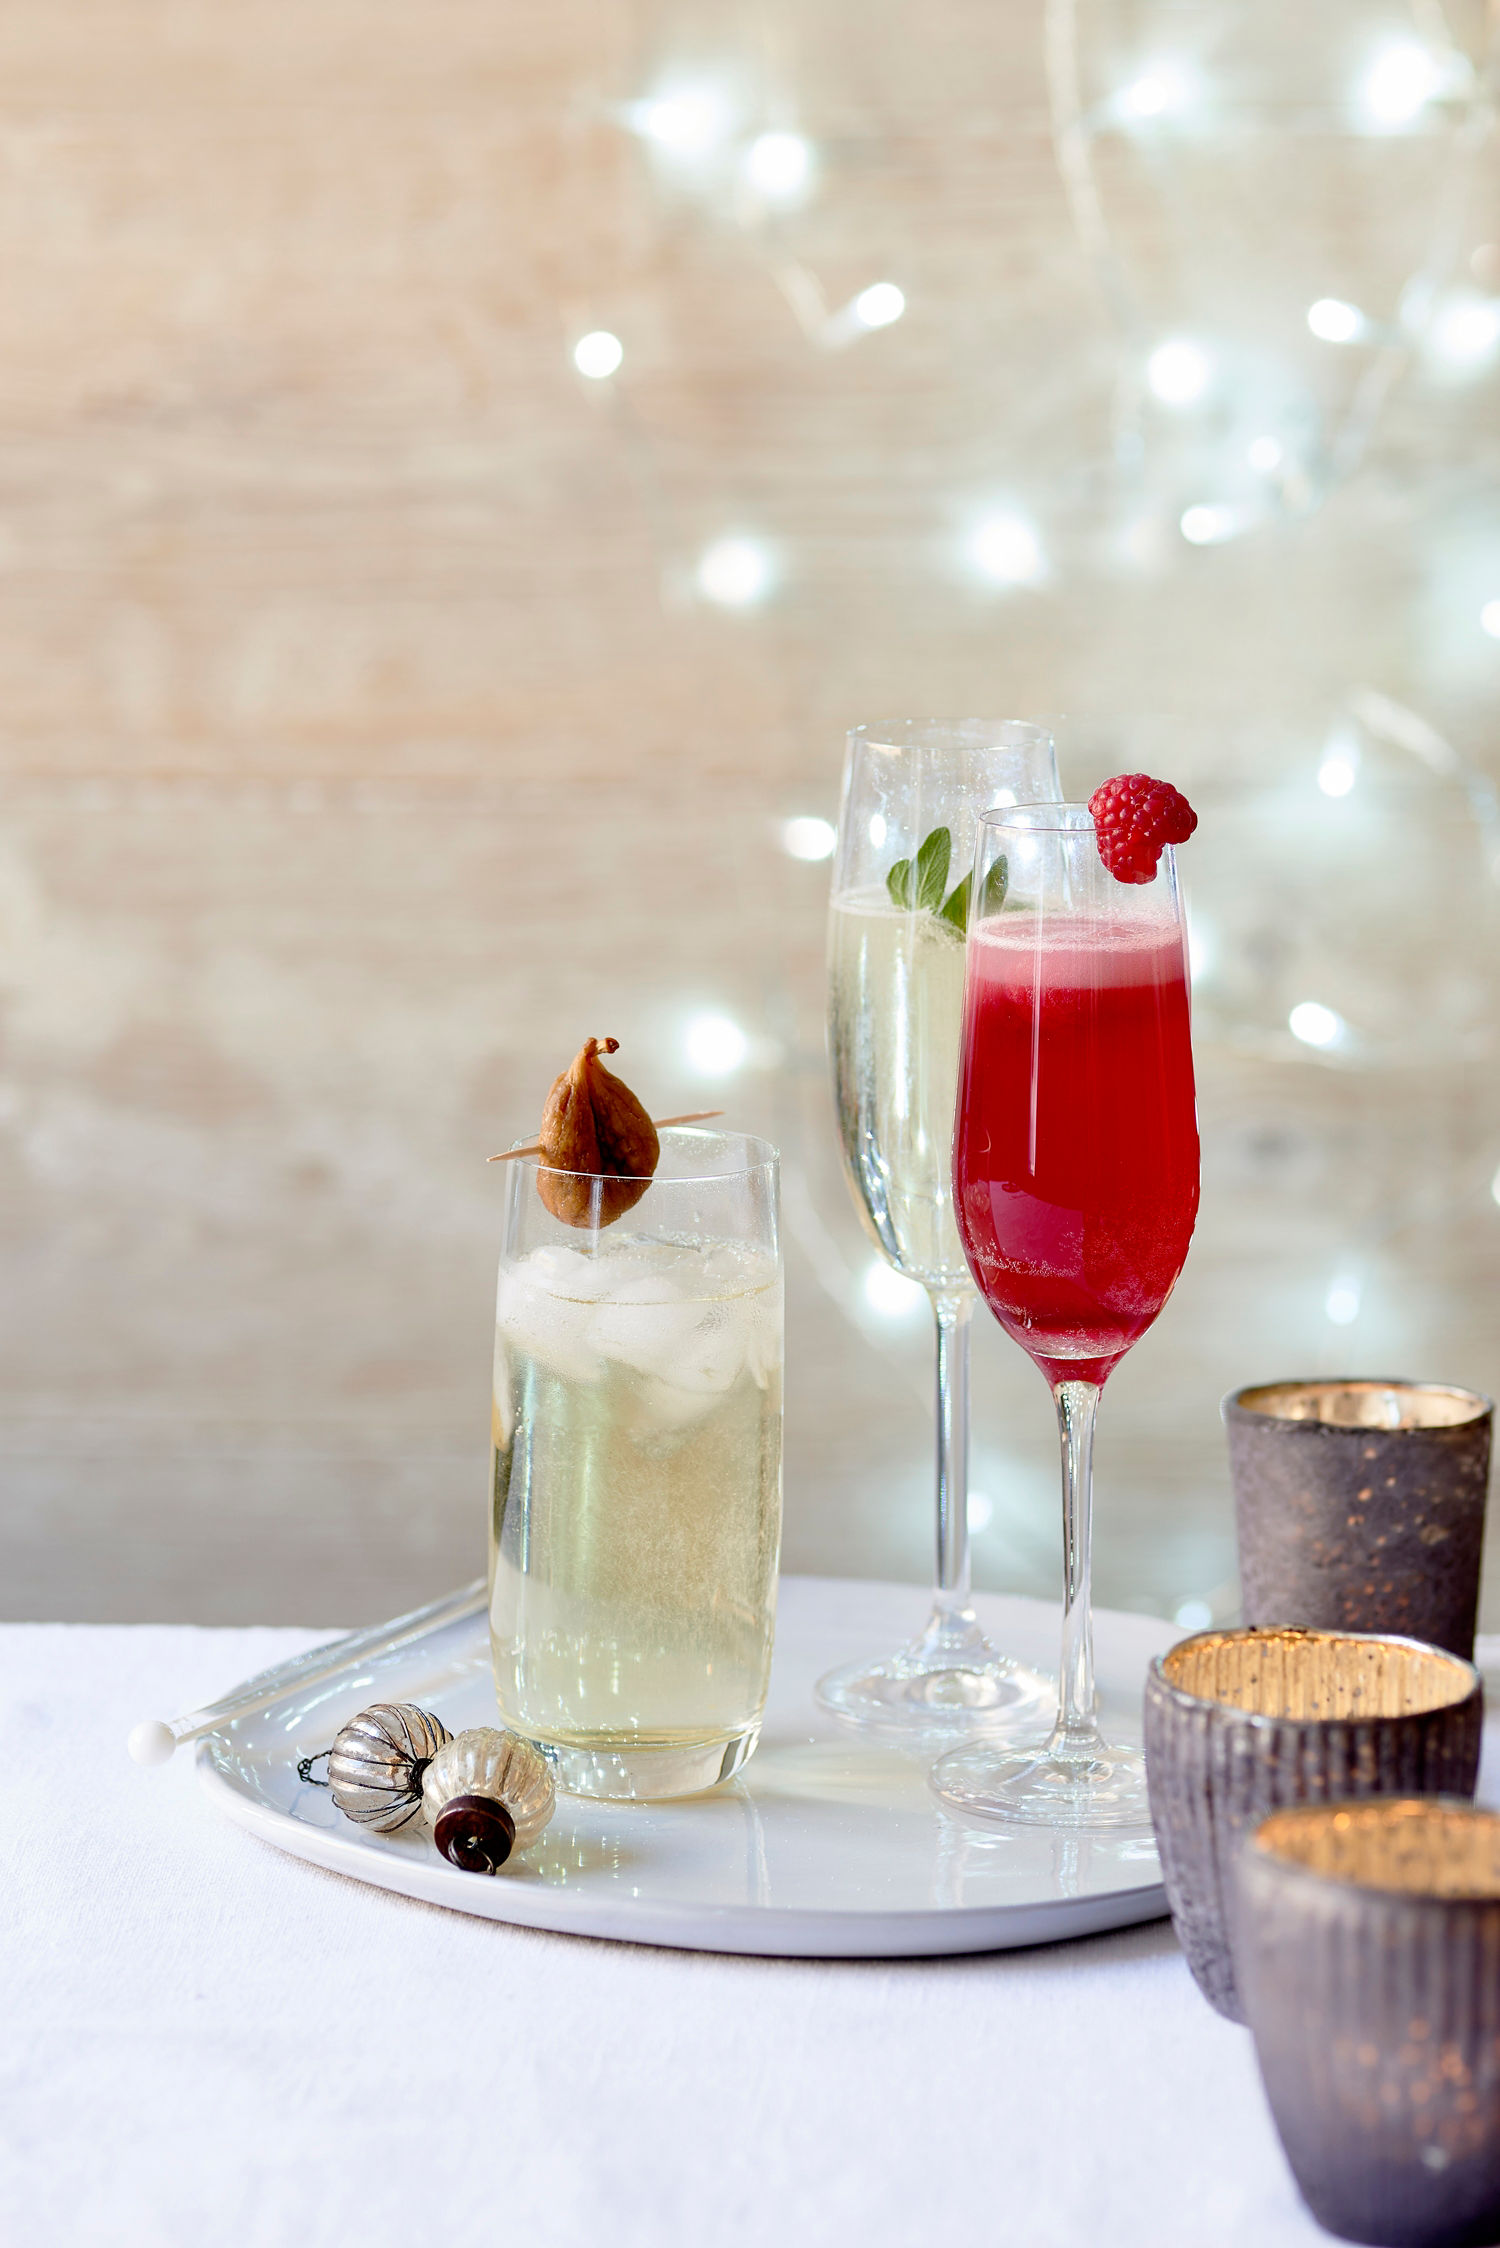 Alcohol-free Christmas mocktails that everyone can enjoy